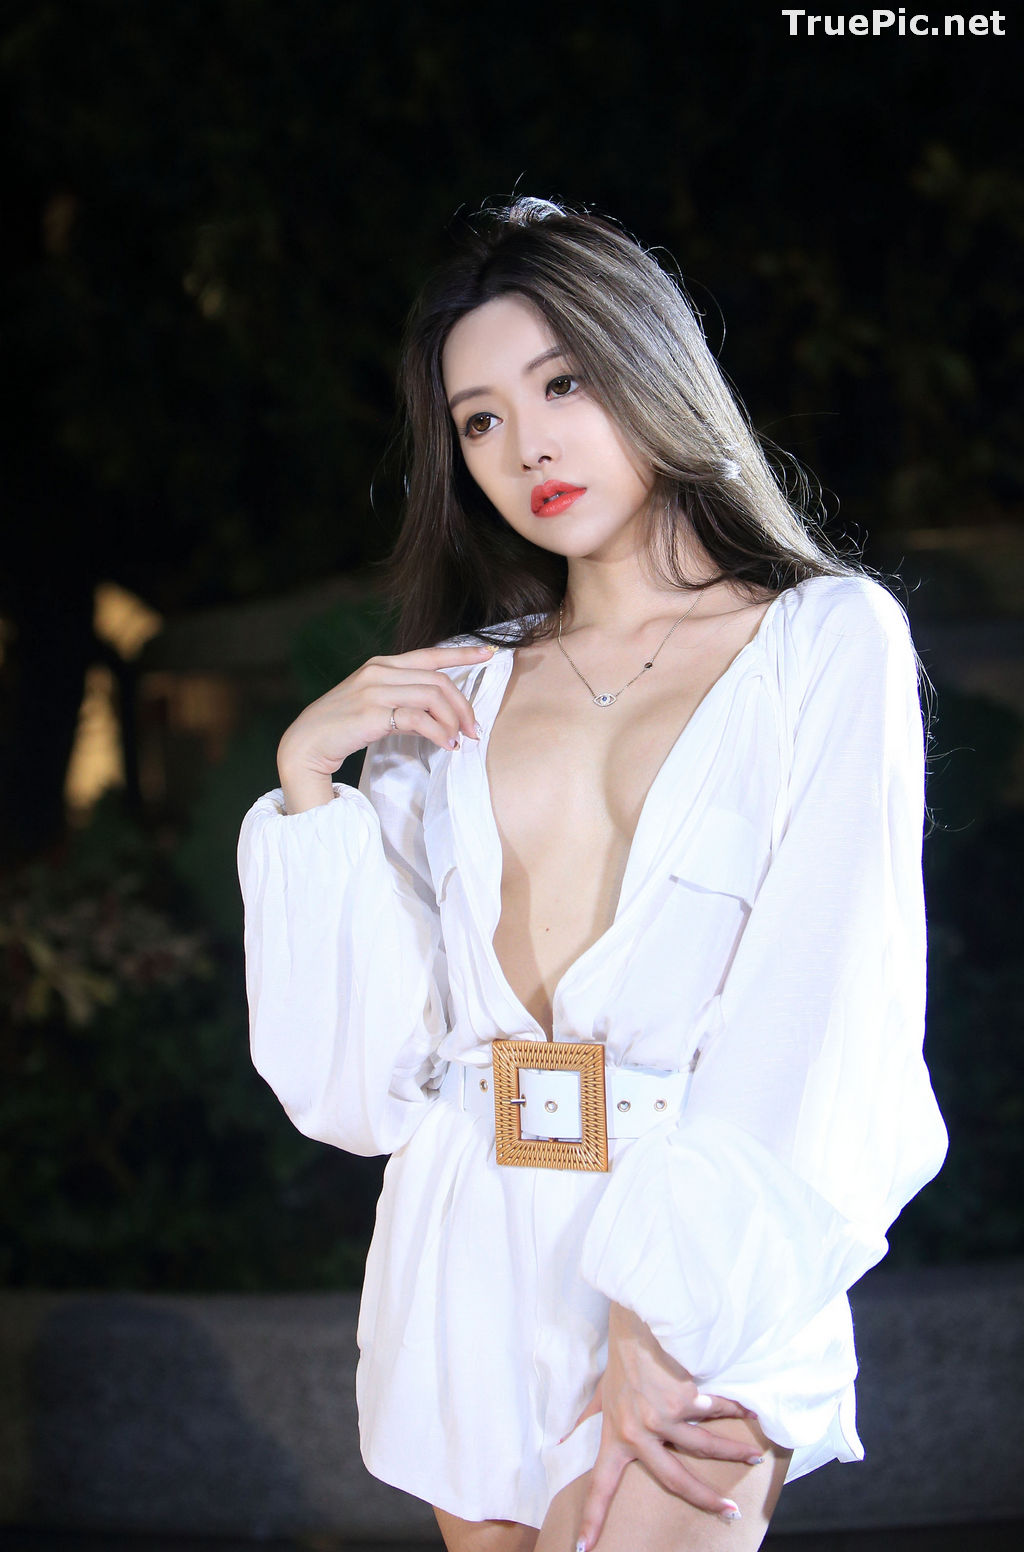 Image Taiwanese Model – 莊舒潔 (ViVi) – Sexy and Pure Baby In Night - TruePic.net - Picture-54